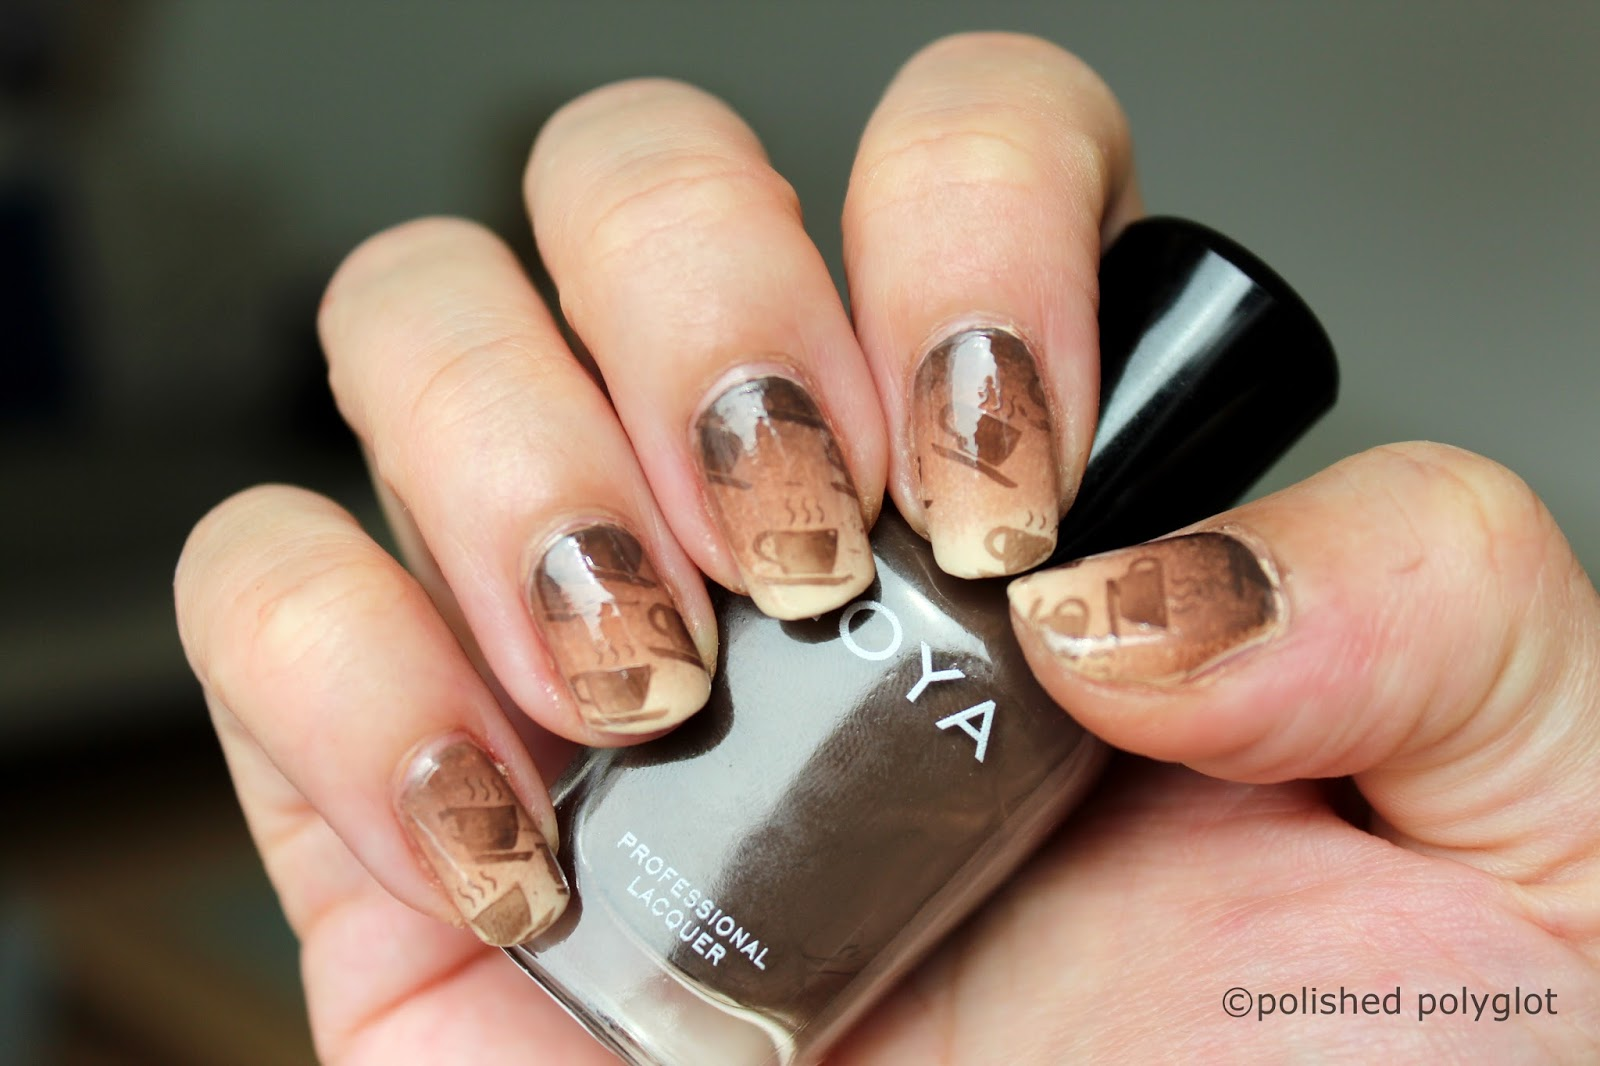 Nail art fancy a cappuccino last nail art design now what cappuccino nail art prinsesfo Image collections